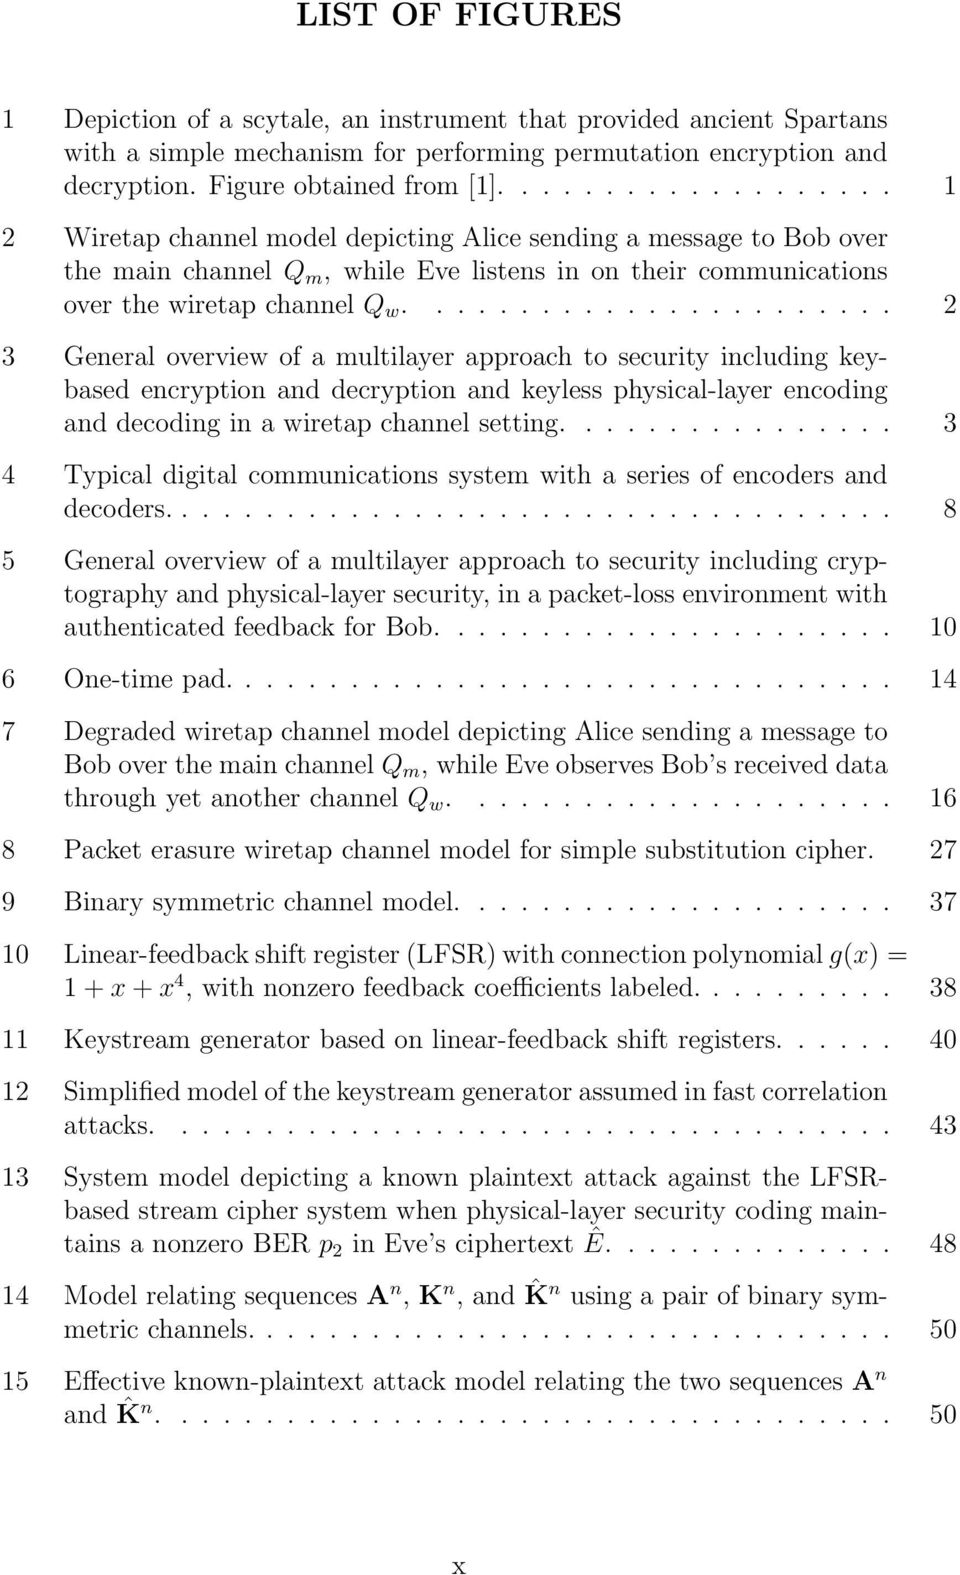 ...................... 2 3 General overview of a multilayer approach to security including keybased encryption and decryption and keyless physical-layer encoding and decoding in a wiretap channel setting.